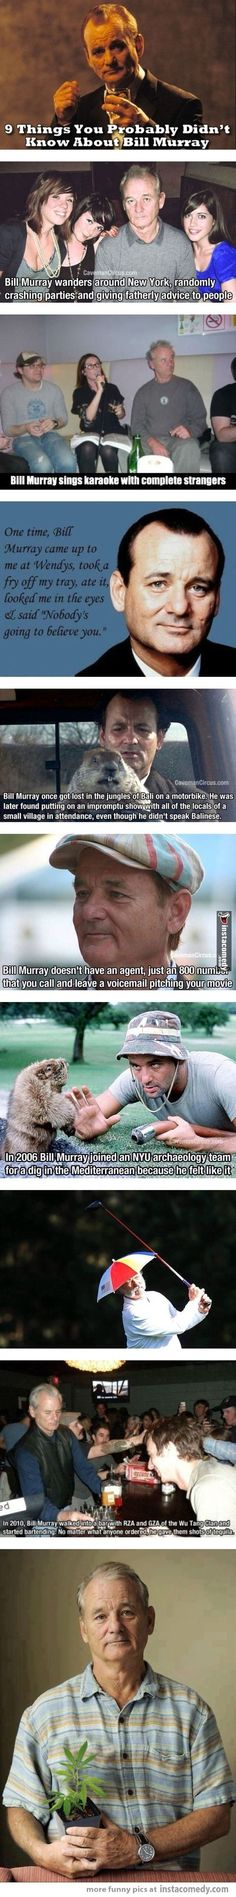 9 things you probably didn't know about Bill Murray